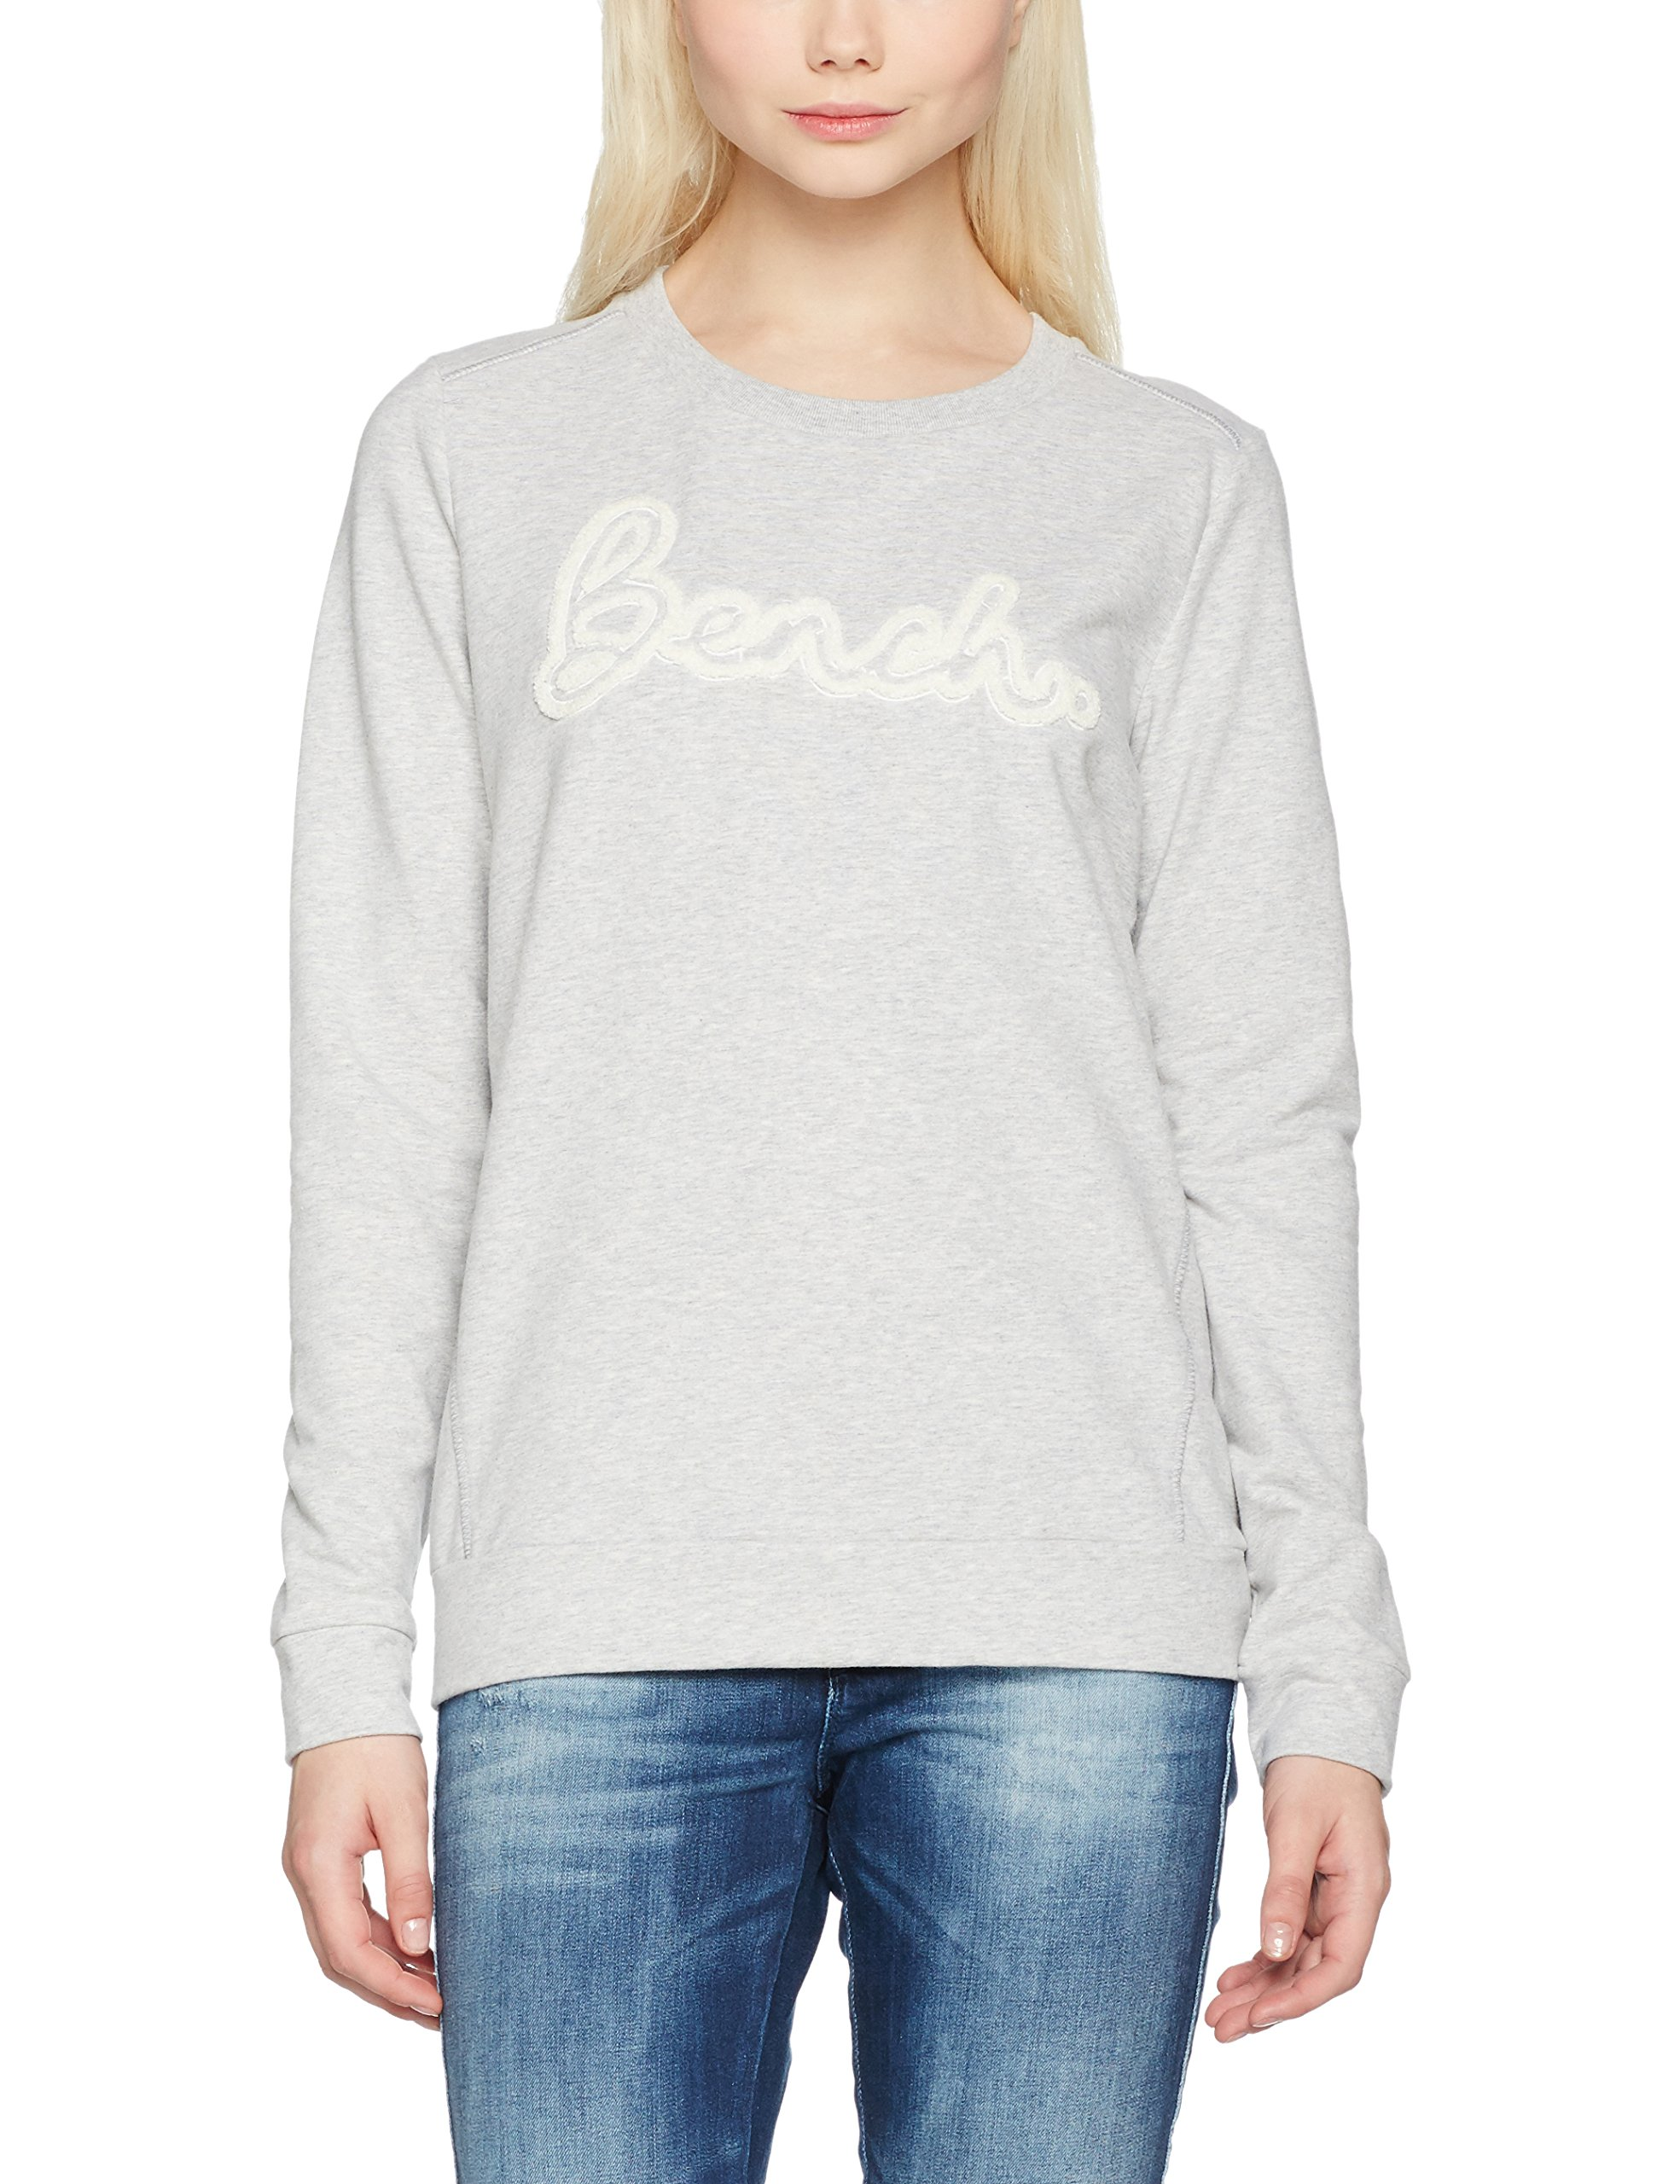 Bench Crew Neck Ma102638taille FabricantSFemme Marl Embro Hole PullGrissummer Grey lFTKJu1c3